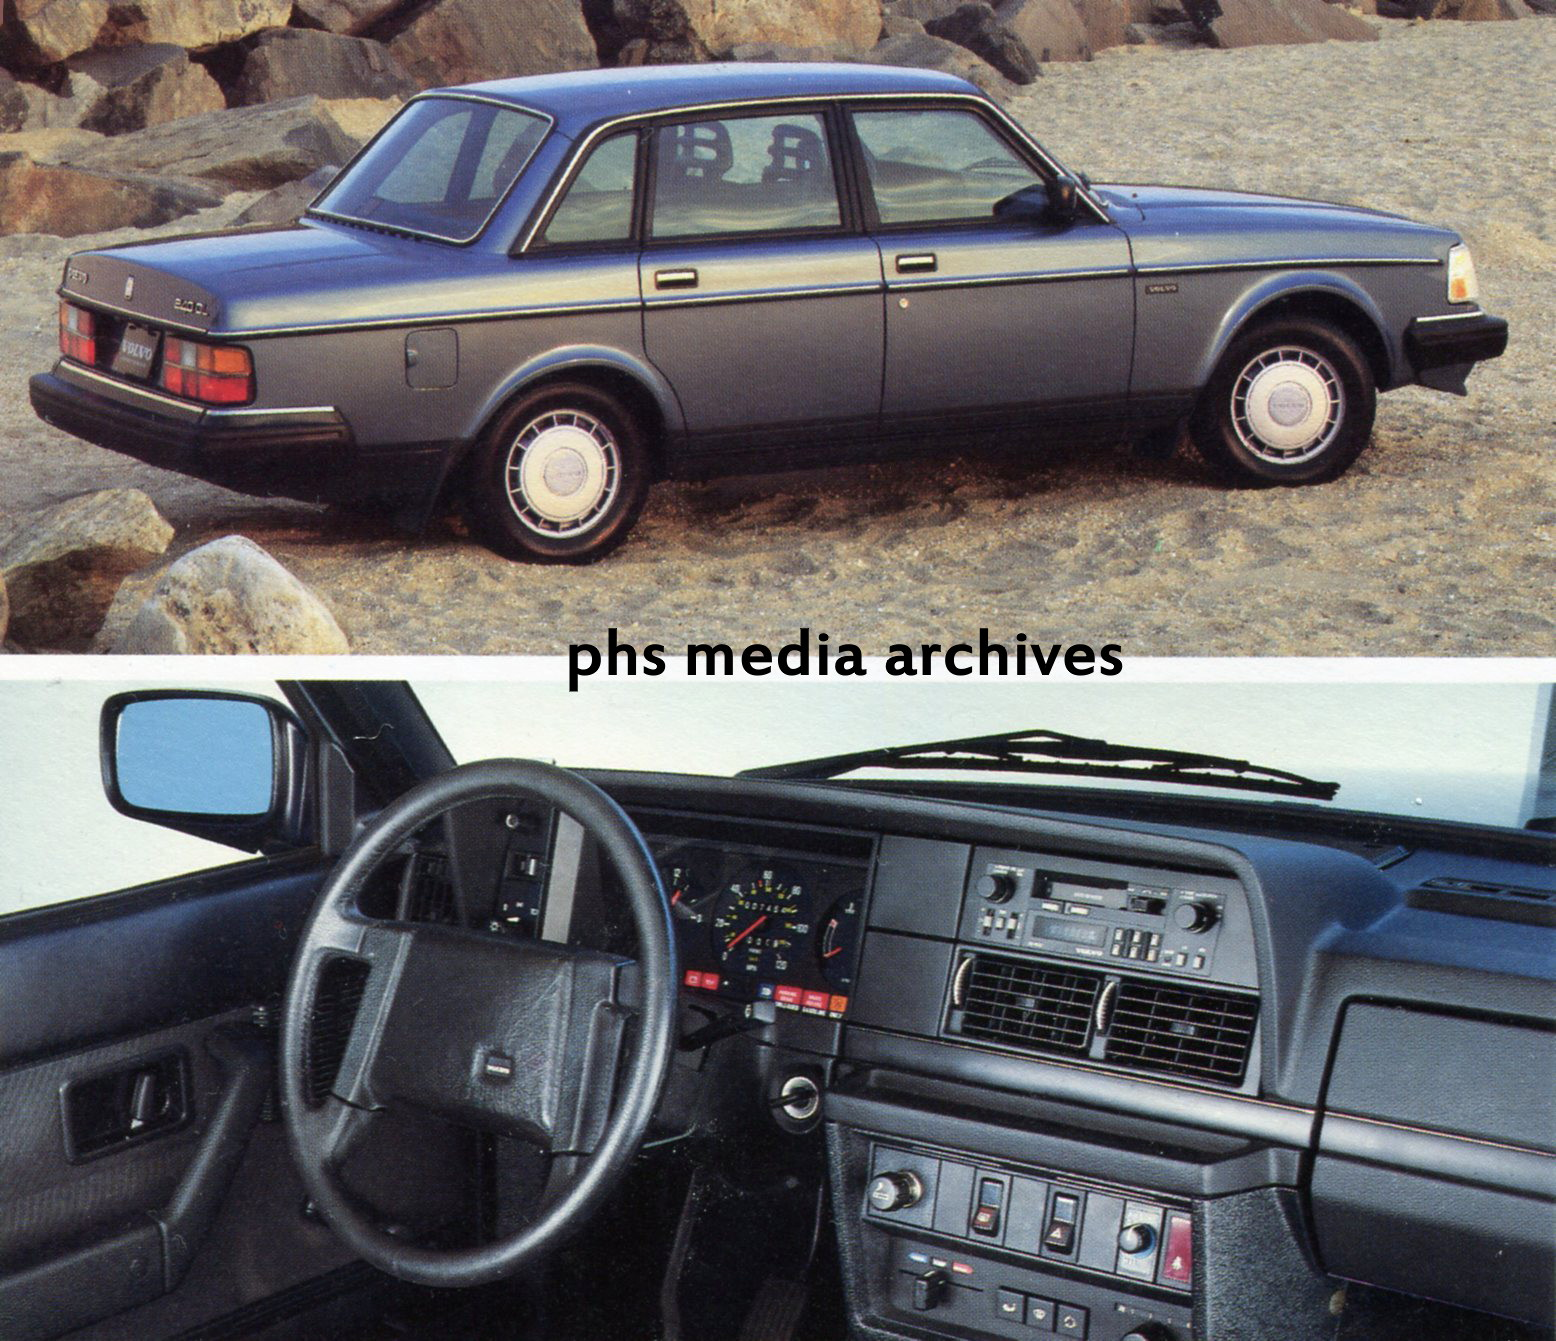 1988 Volvo 240 Future Classic Phscollectorcarworld Cruise Control Wiring Diagram The Interior Was Basic And A Bit Plasticky But No One Accused Of Being Cheap On Quality This Stuff Lasted